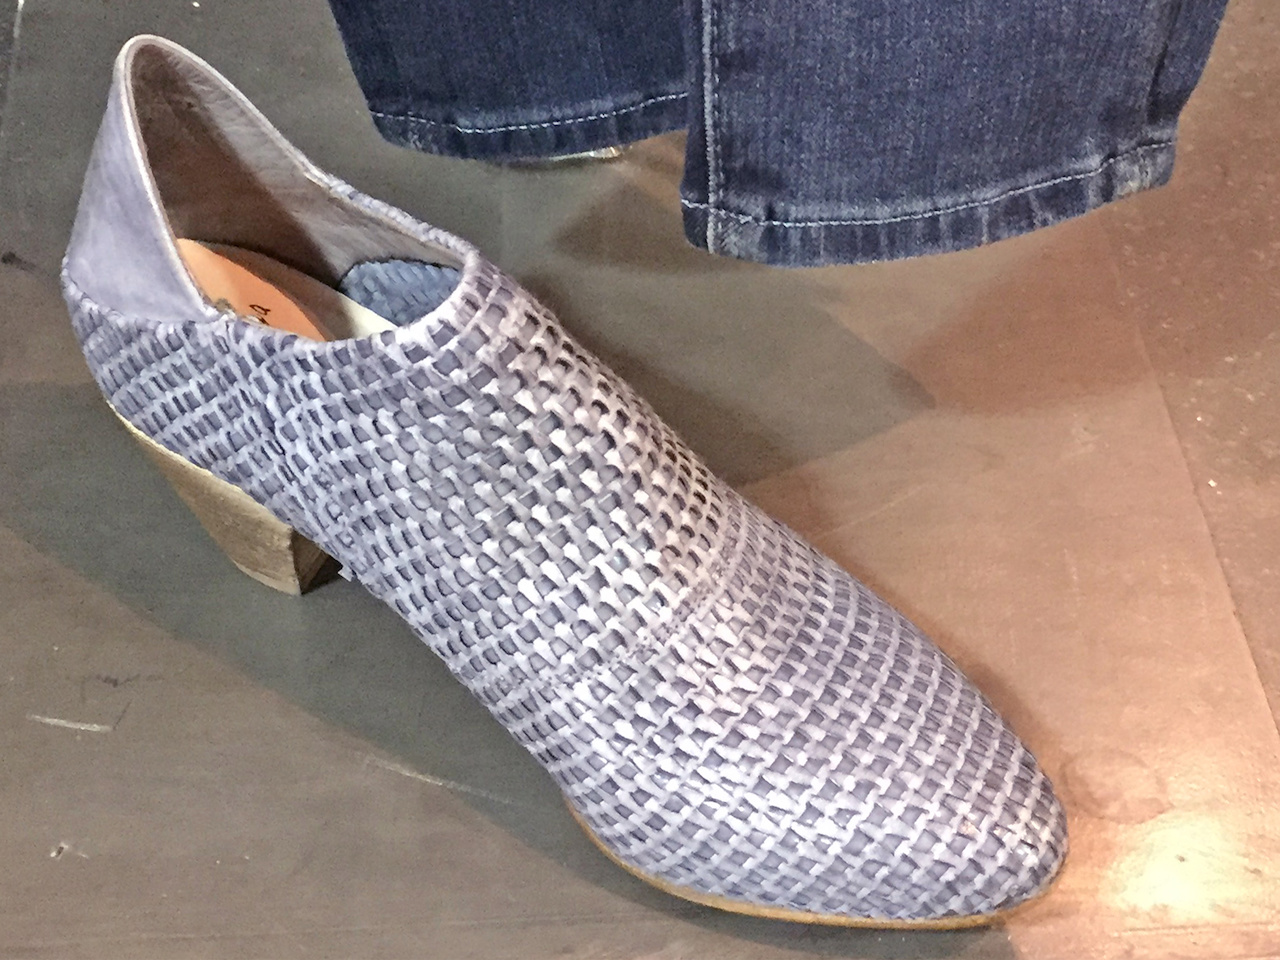 From Betsy Prince: La Bottega di Lisa gray woven leather bootie, $435